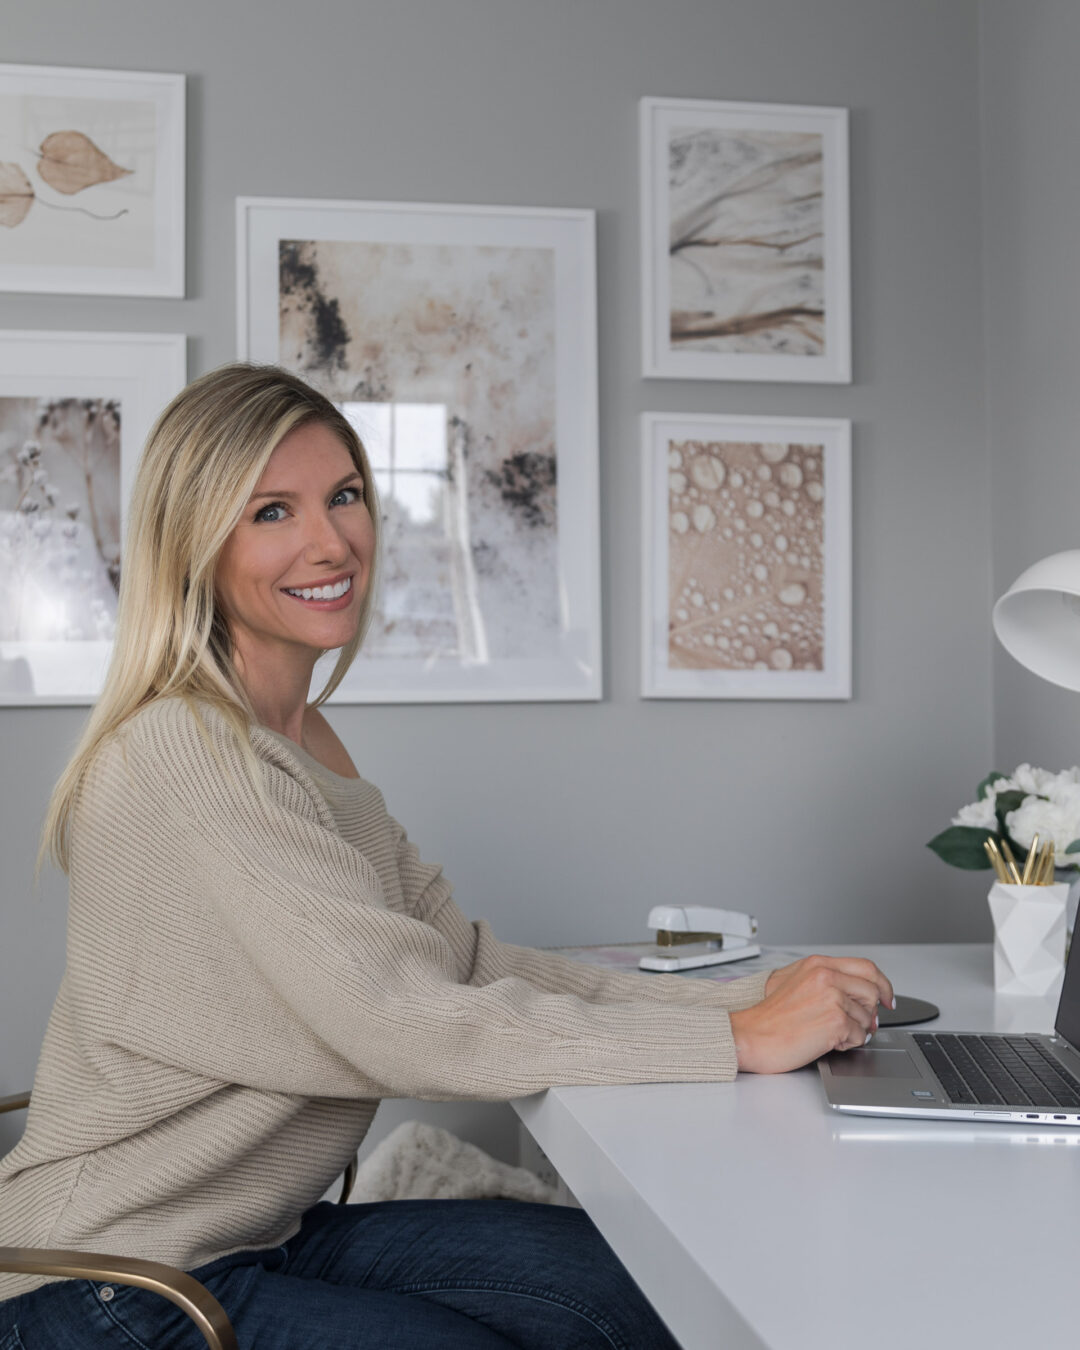 neutral-home-office-with-desenio-gallery-walll-the-glamorous-gal